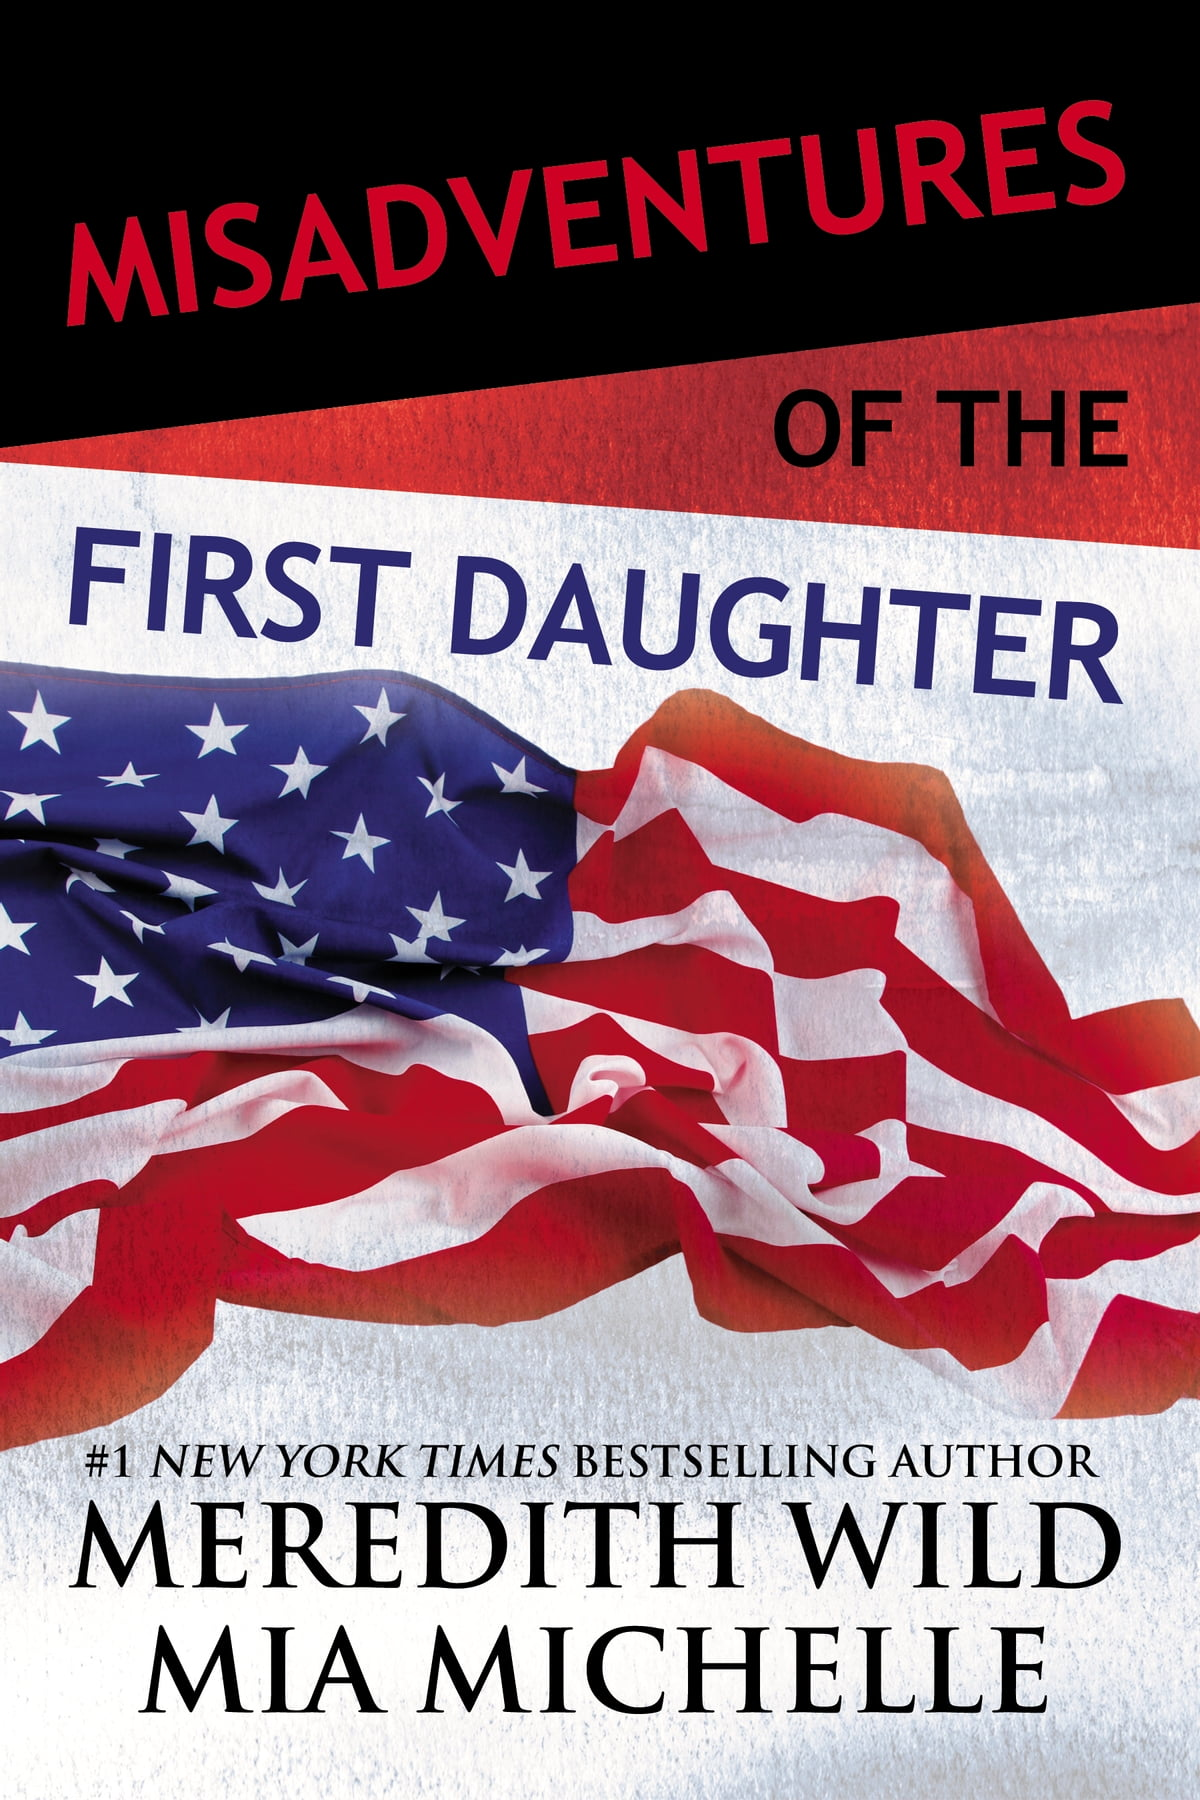 Misadventures of the first daughter ebook by meredith wild misadventures of the first daughter ebook by meredith wild 1230001557152 rakuten kobo fandeluxe Gallery